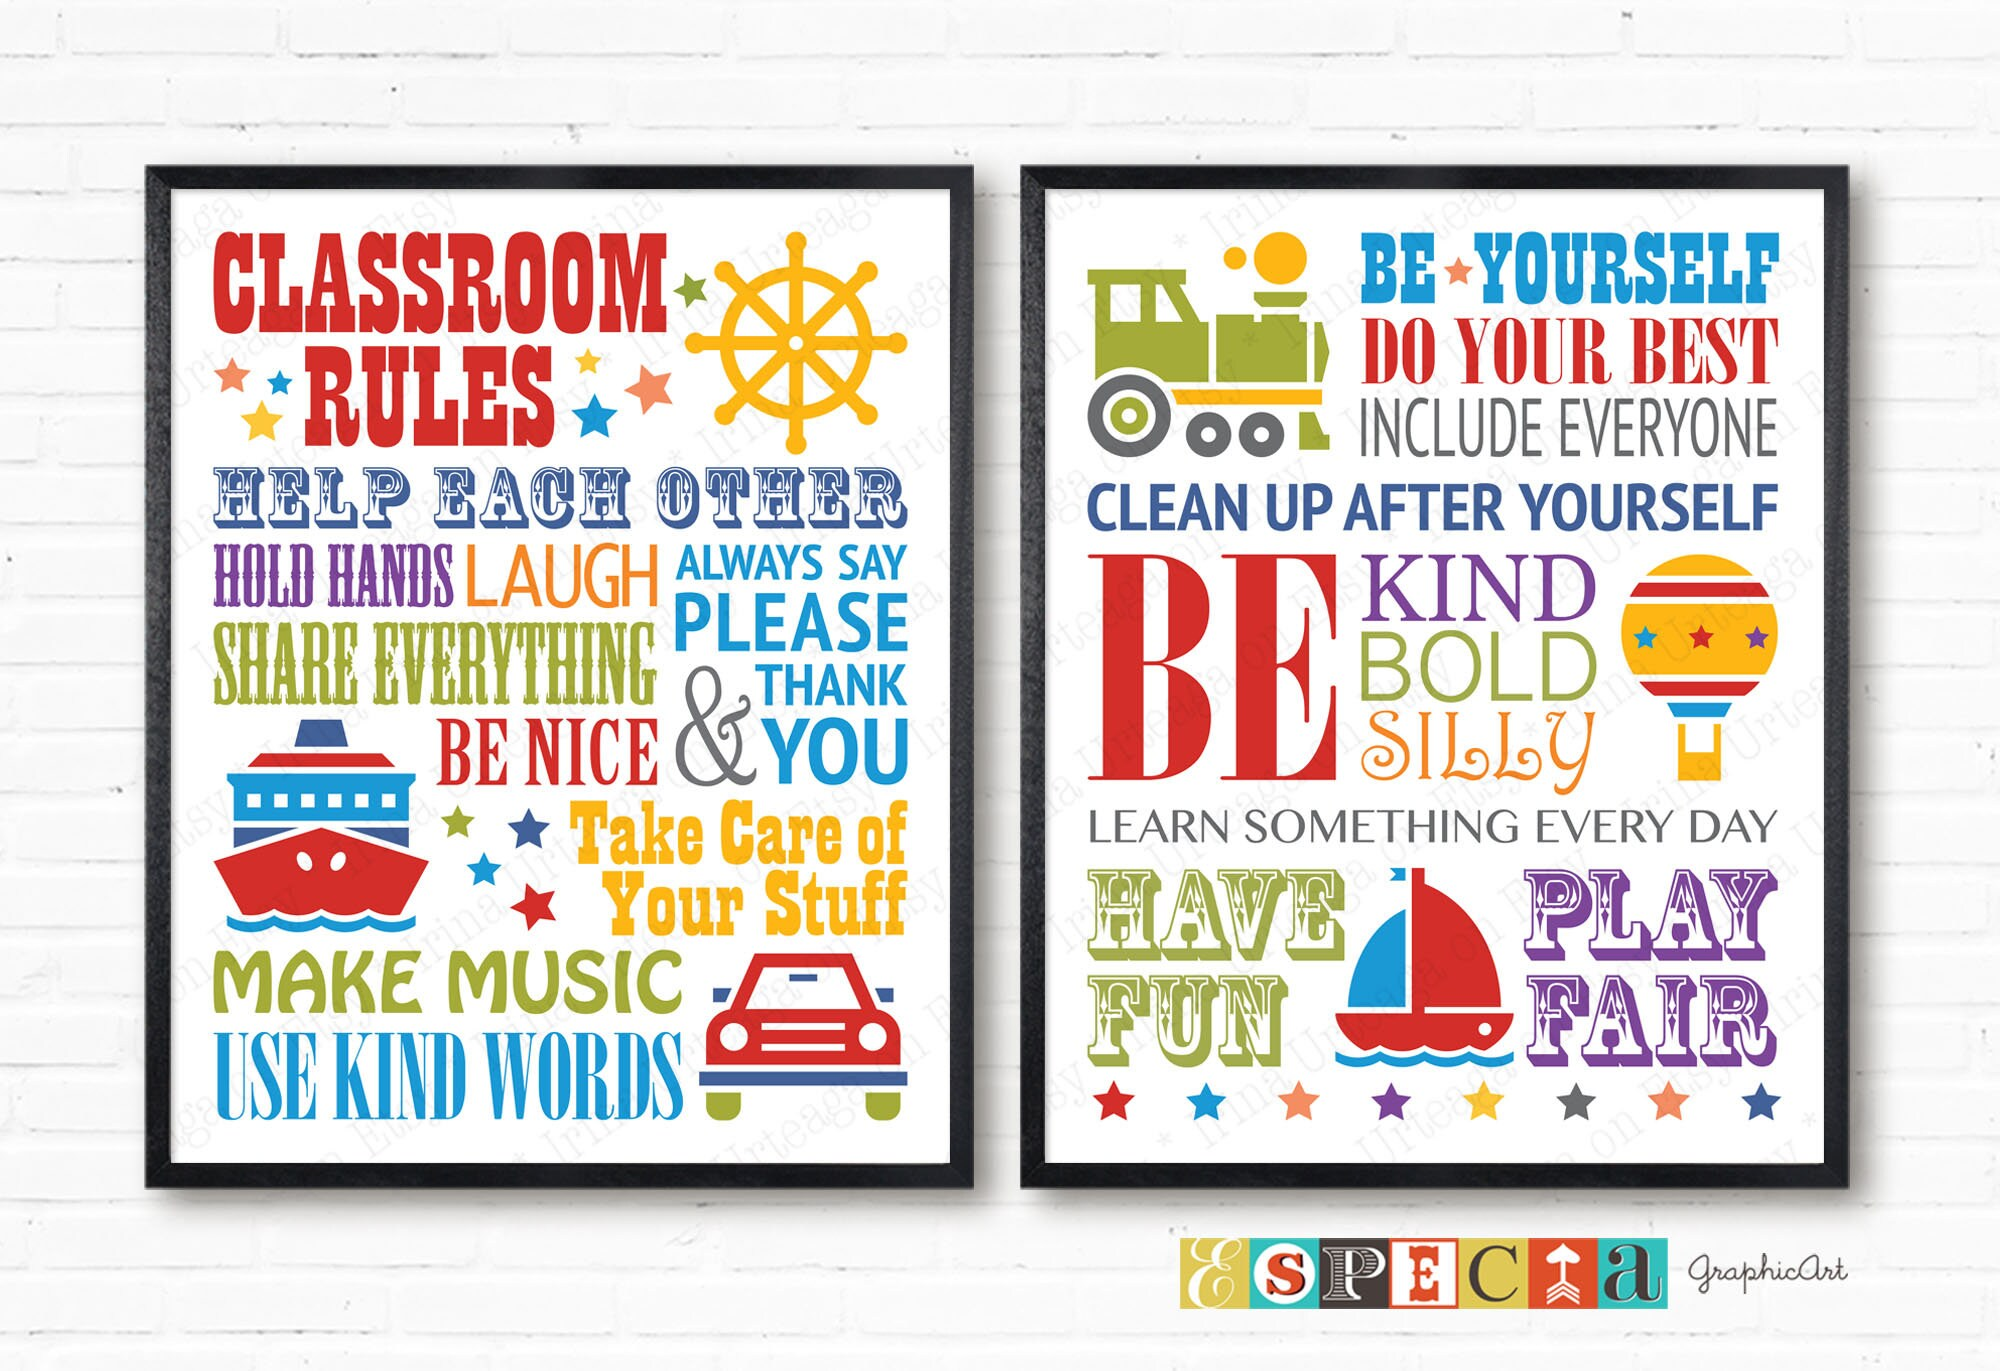 Art Decoration Class Classroom Rules Printable Art For School Students Kindergarten Or Daycare Set Of 2 Kids Play Area Signs Class Decoration Print 8x10 11x14